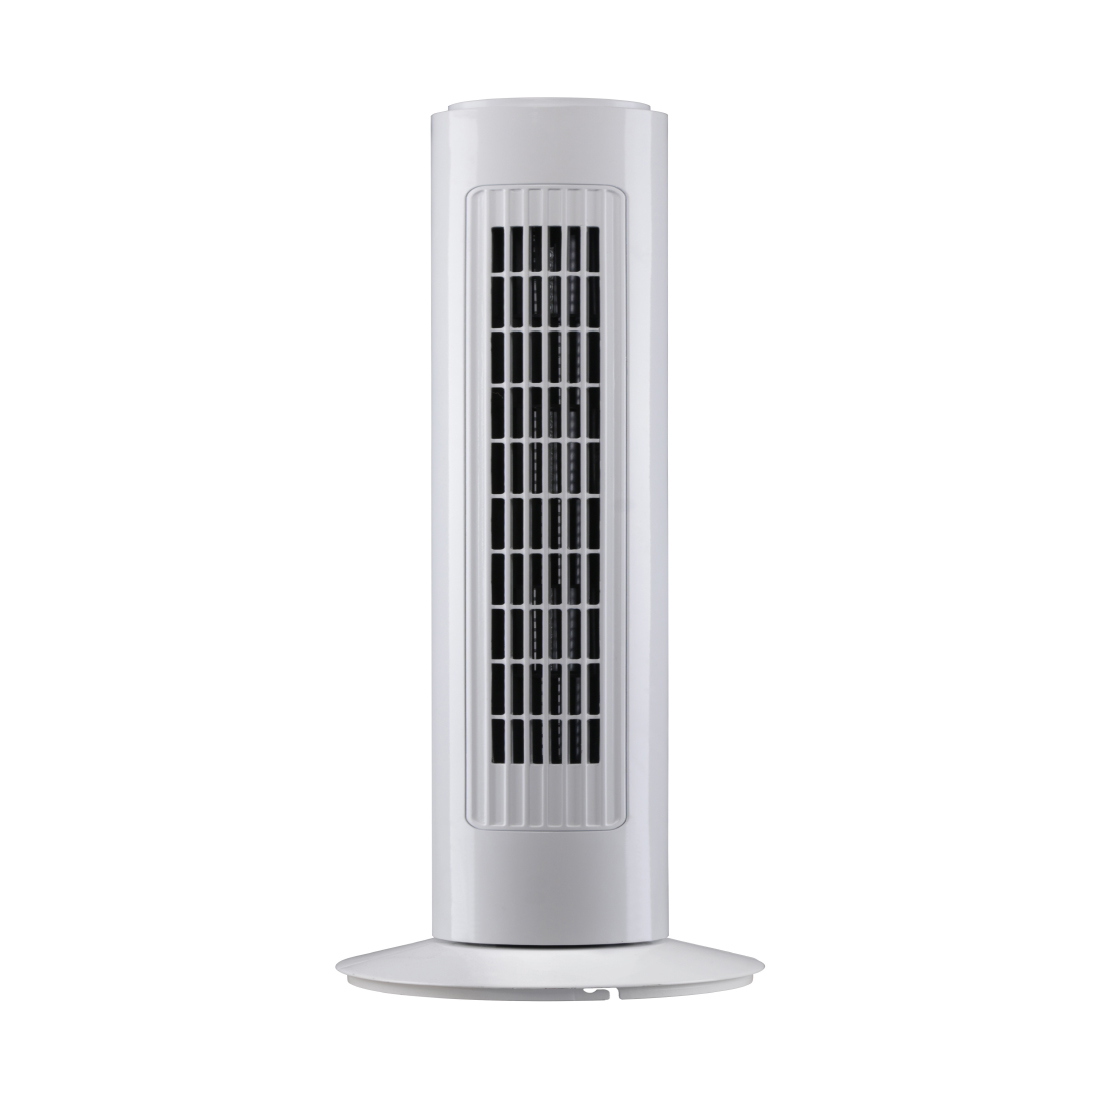 5 Star Facilities Tower Fan 90deg Oscillating 3-Speed 120-Minute Timer 40 Watts H762mm White